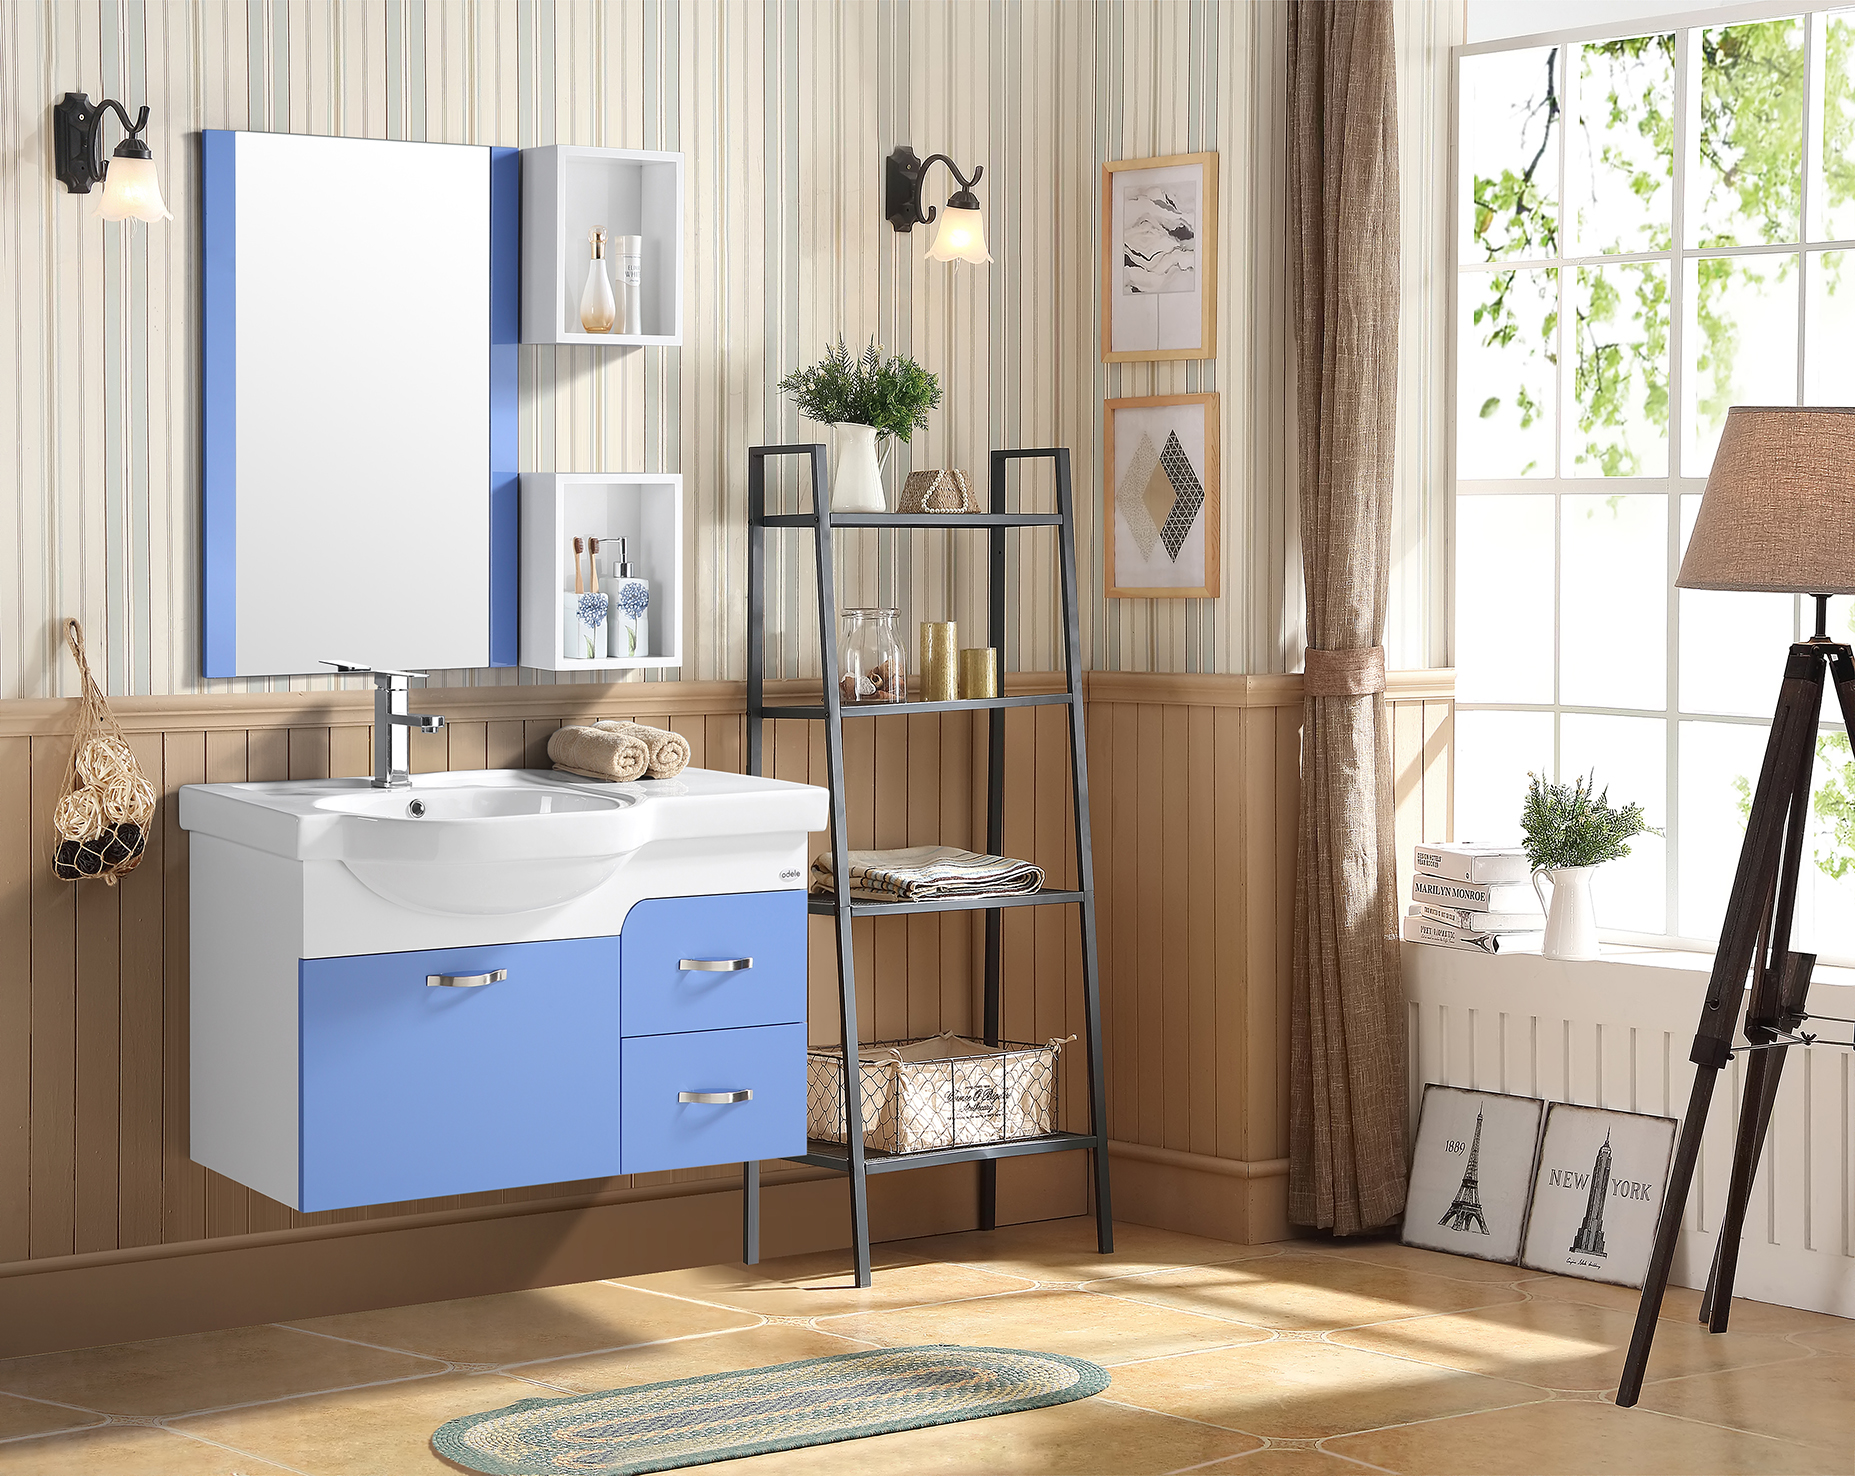 Kaiser Bath Vanity in Blue & White Colour by HomeTown